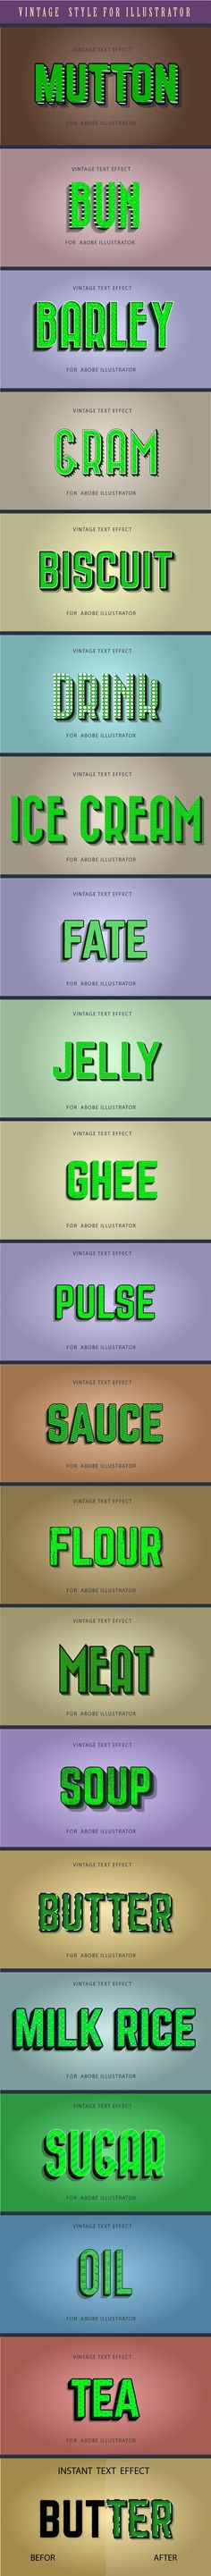 Buy Vintage Graphics Style For Illustrator by Fazle_Munim on GraphicRiver. This is a quality pack of 20 different vintage and retro graphic styles for Adobe Illustrator. Vintage Type, Vintage Looks, Text Effects, Adobe Illustrator, Graphic Design, Design Art, Typography, Retro, Illustration